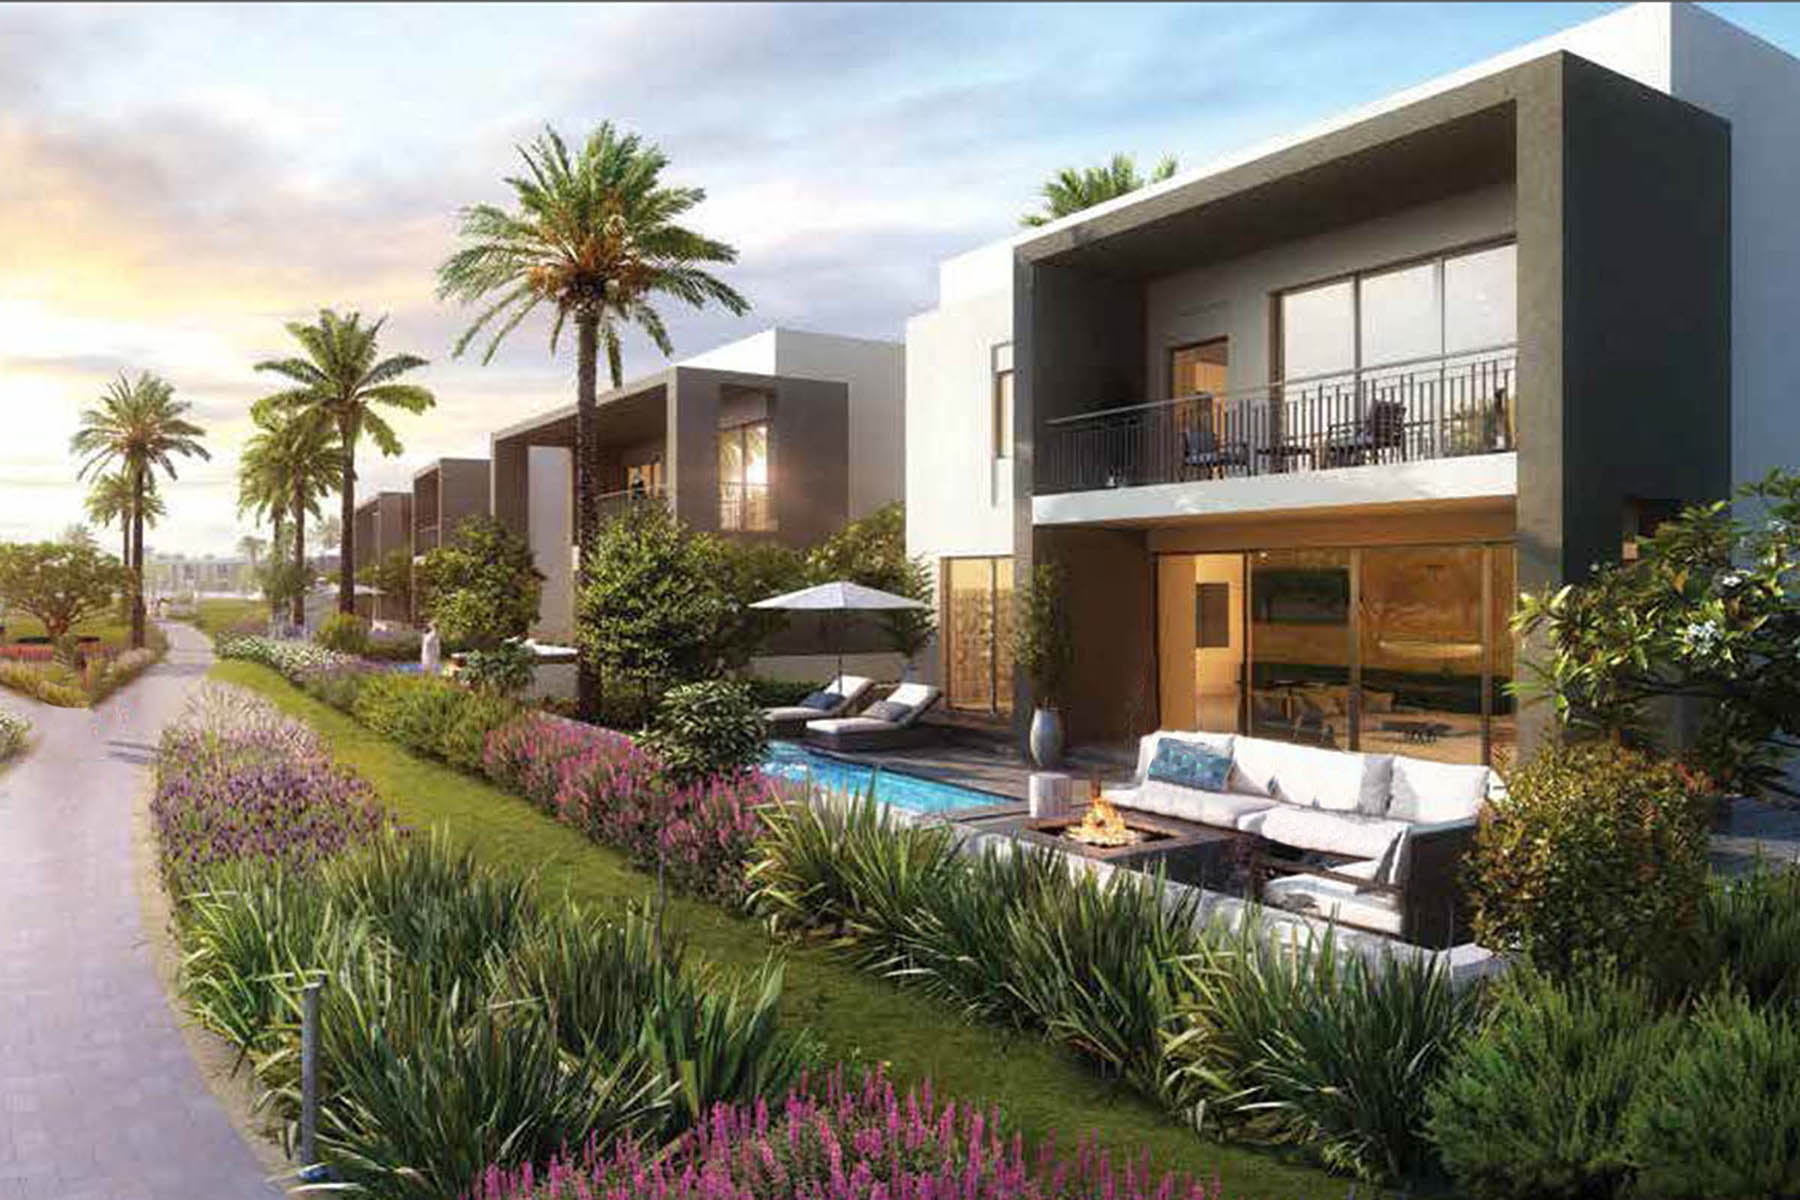 Single Family Home for Sale at Limited Sidra 2 Great Location and Plot Size Dubai Hills Estate Sidra Villas, Dubai, 00000 United Arab Emirates